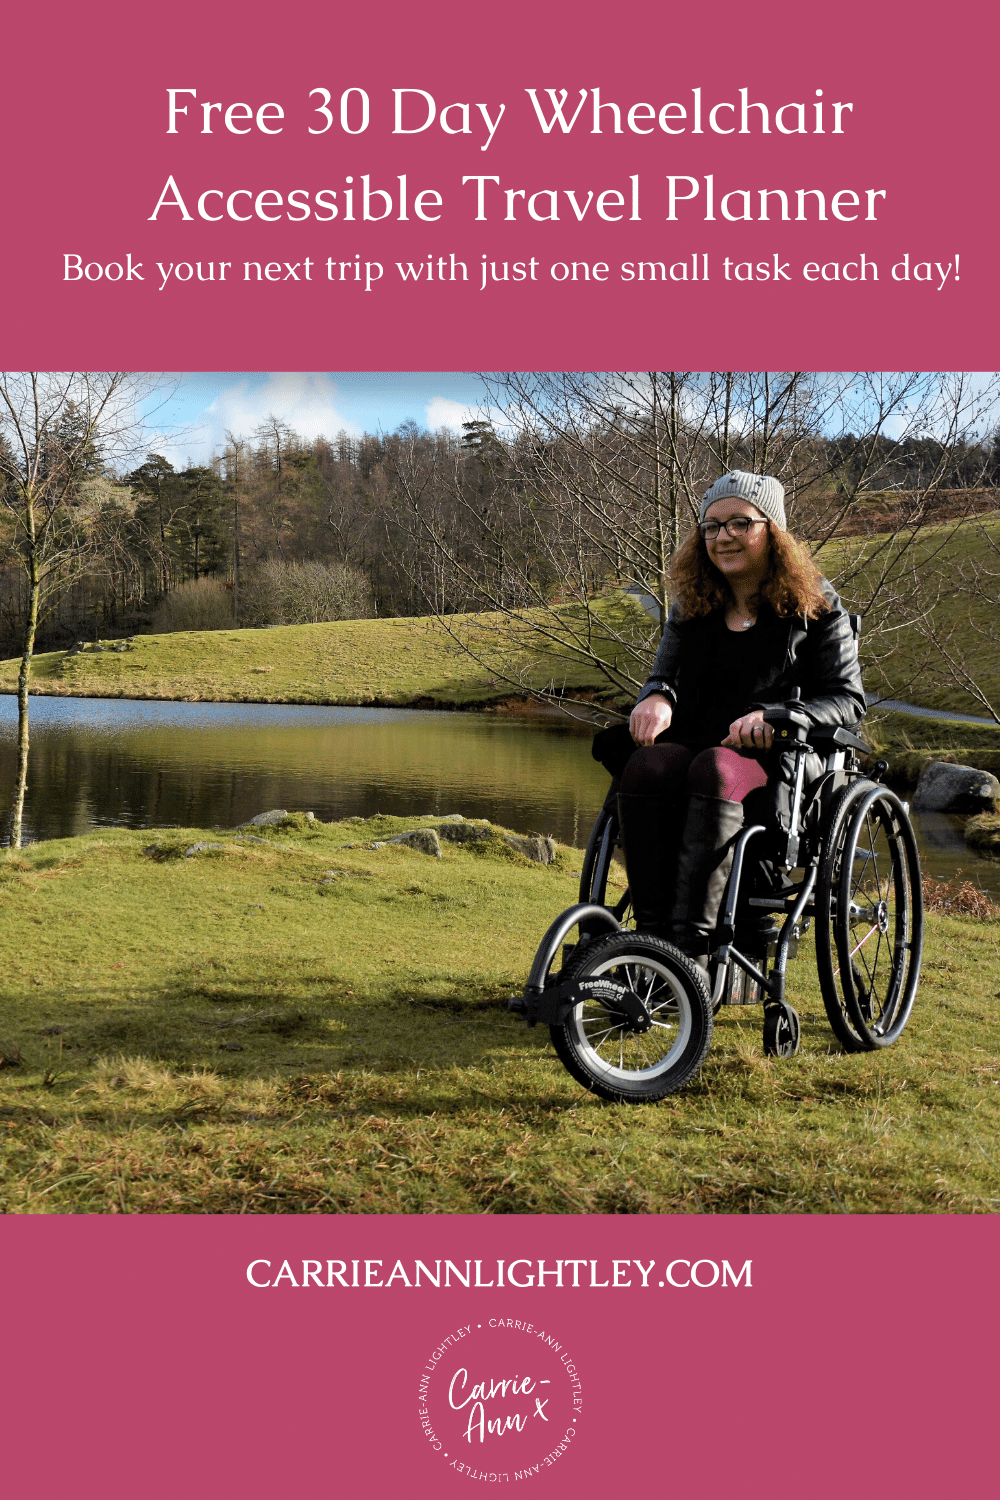 Top of image reads - Free 30 Day Wheelchair Accessible Travel Planner Book your next trip with just one small task each day! Middle of image shows Carrie-Ann in her wheelchair. Bottom of image has this blog's website address and logo